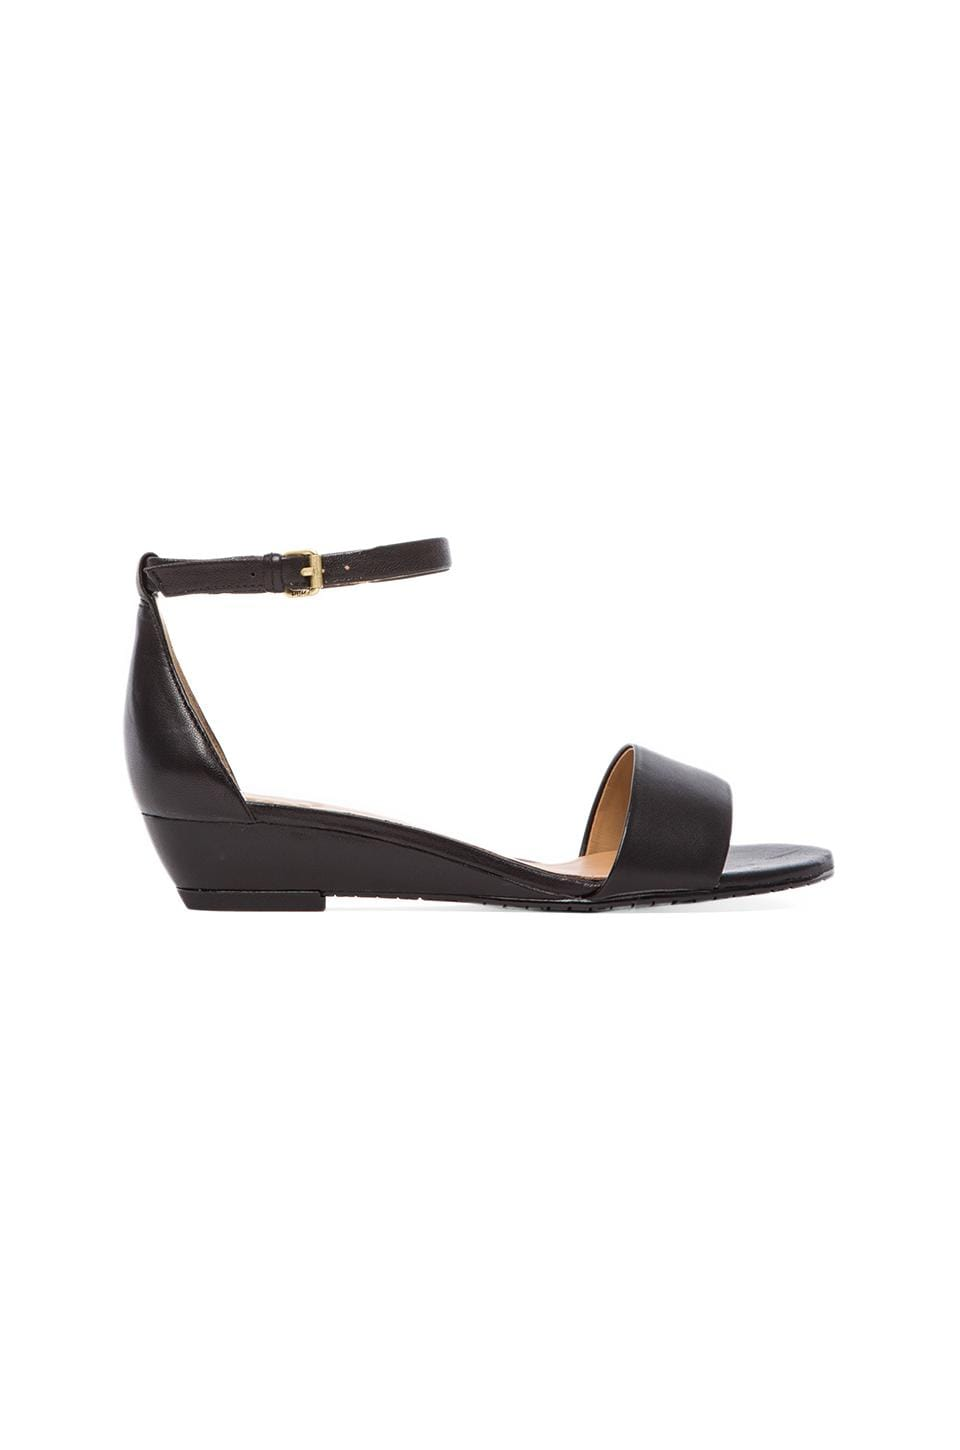 Marc by Marc Jacobs Demi Wedge in Black